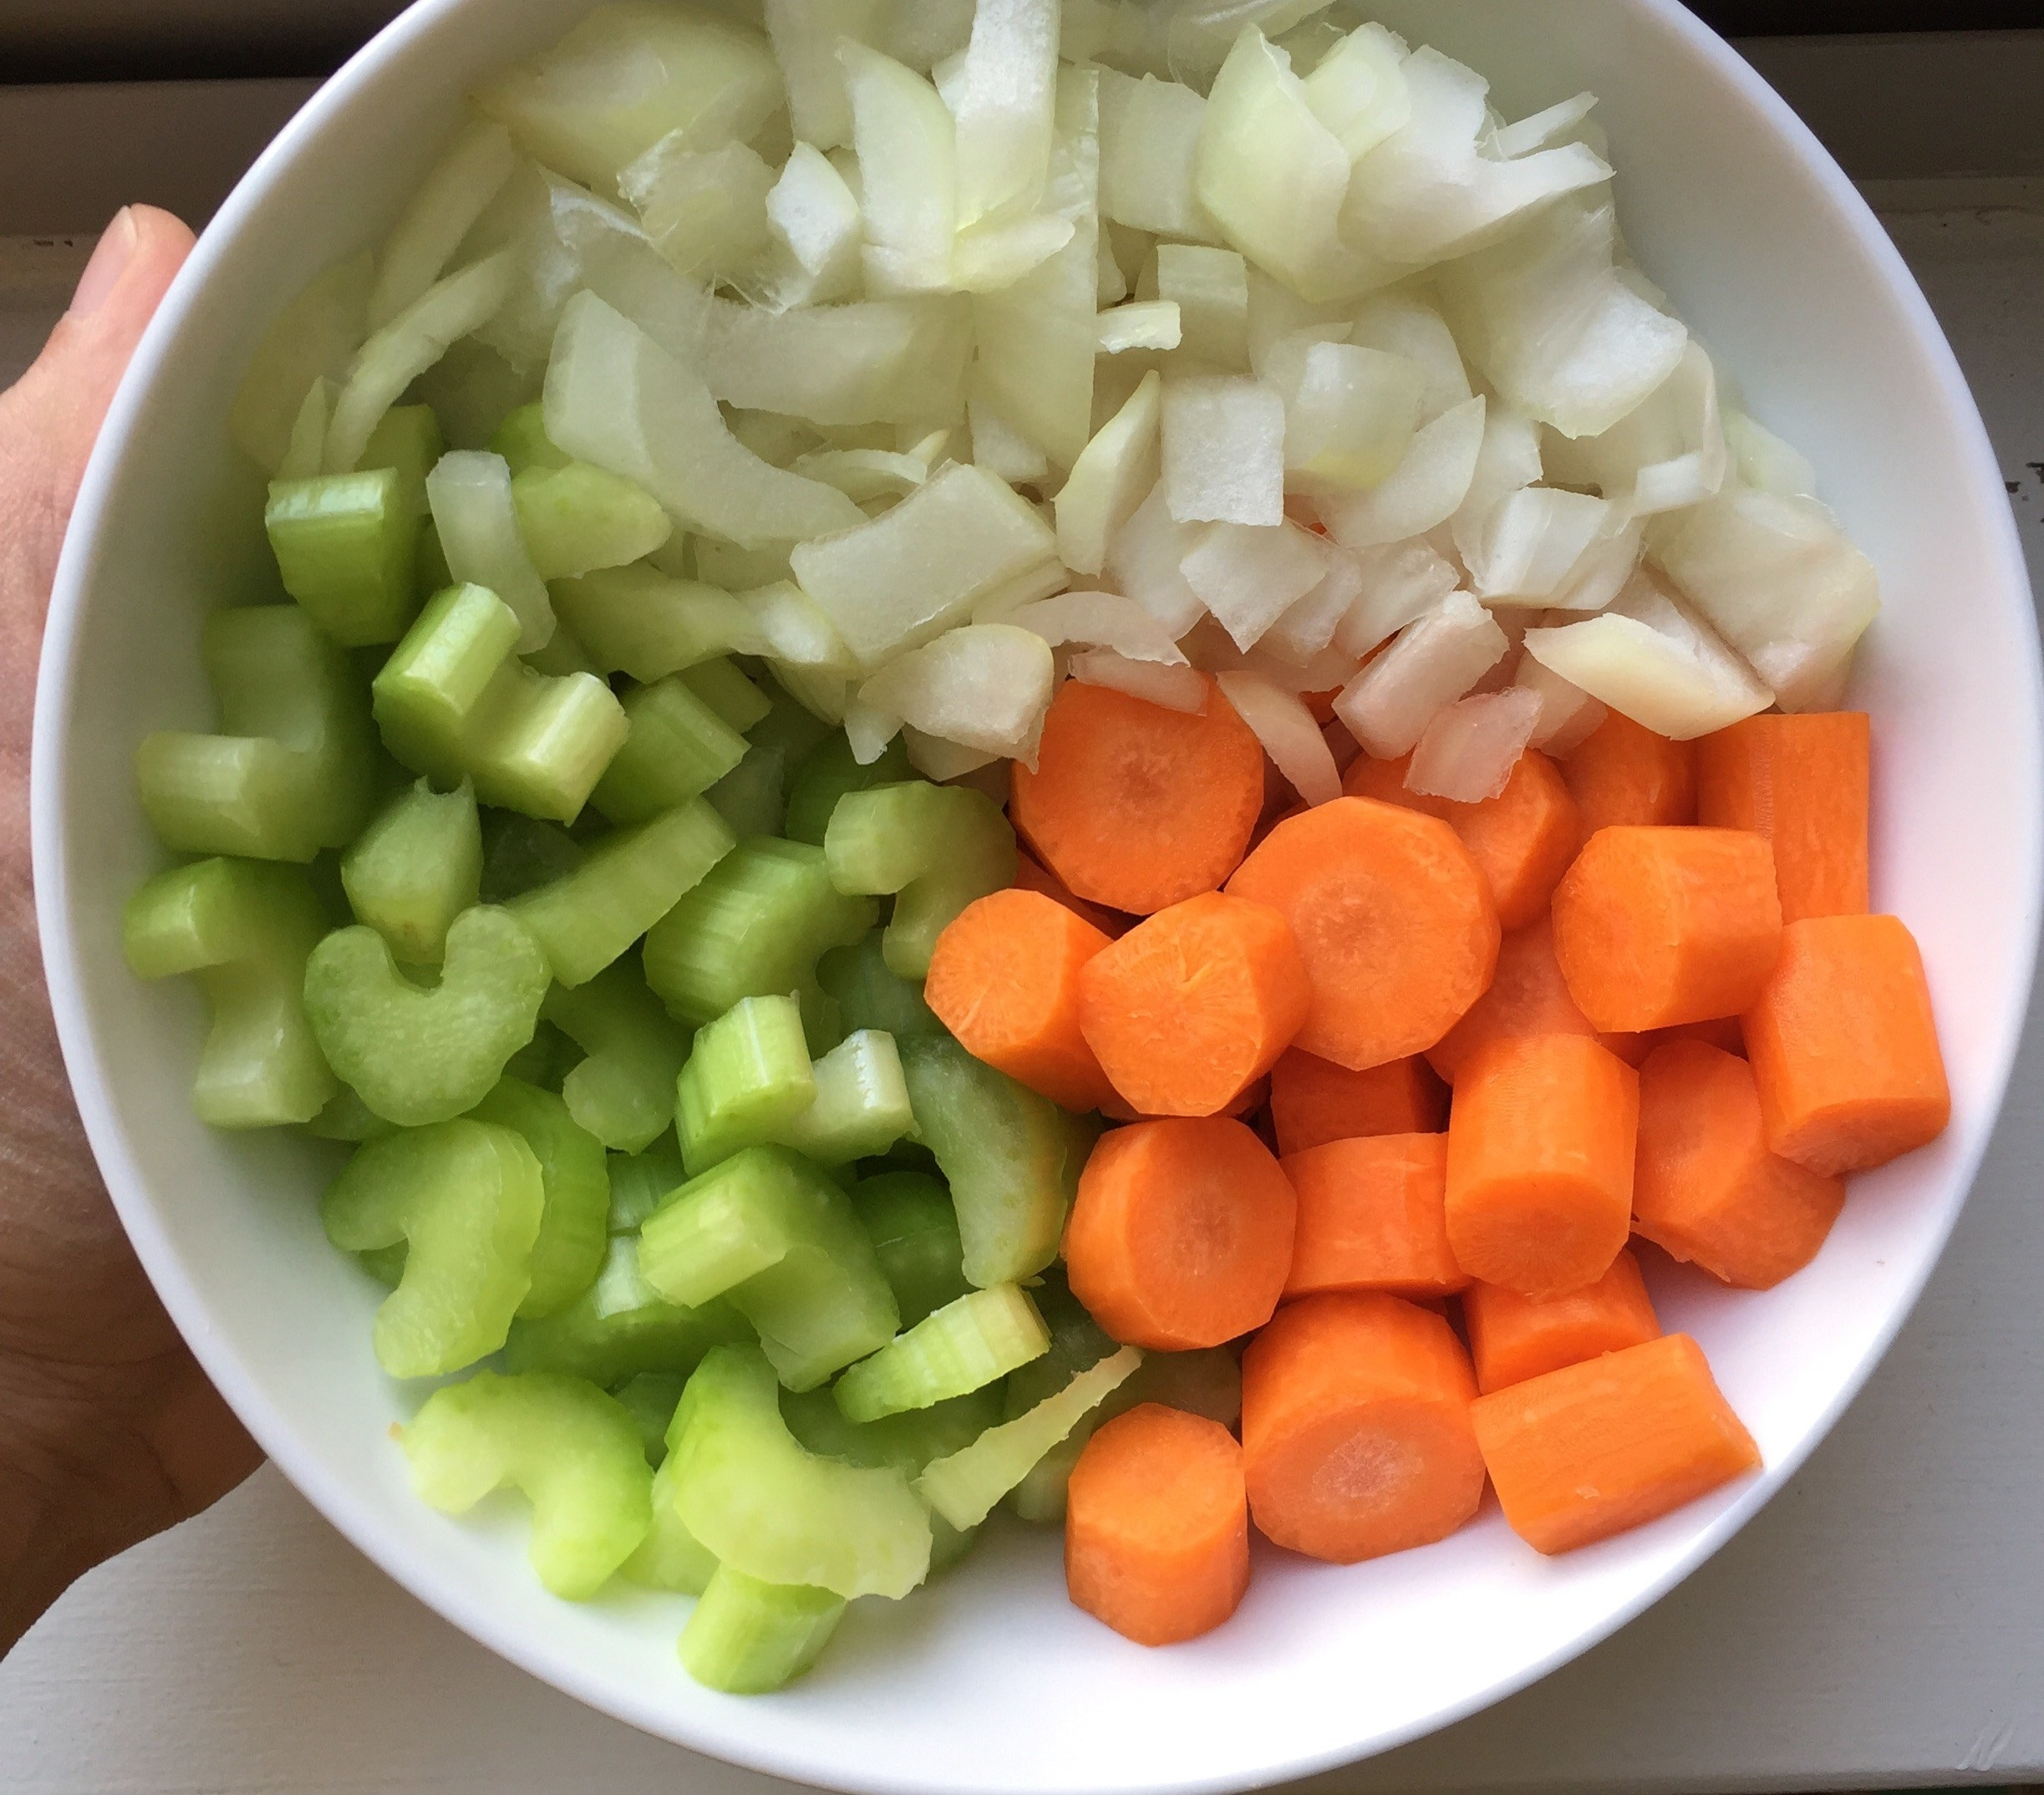 A prepped bowl of onions, carrots, and celery